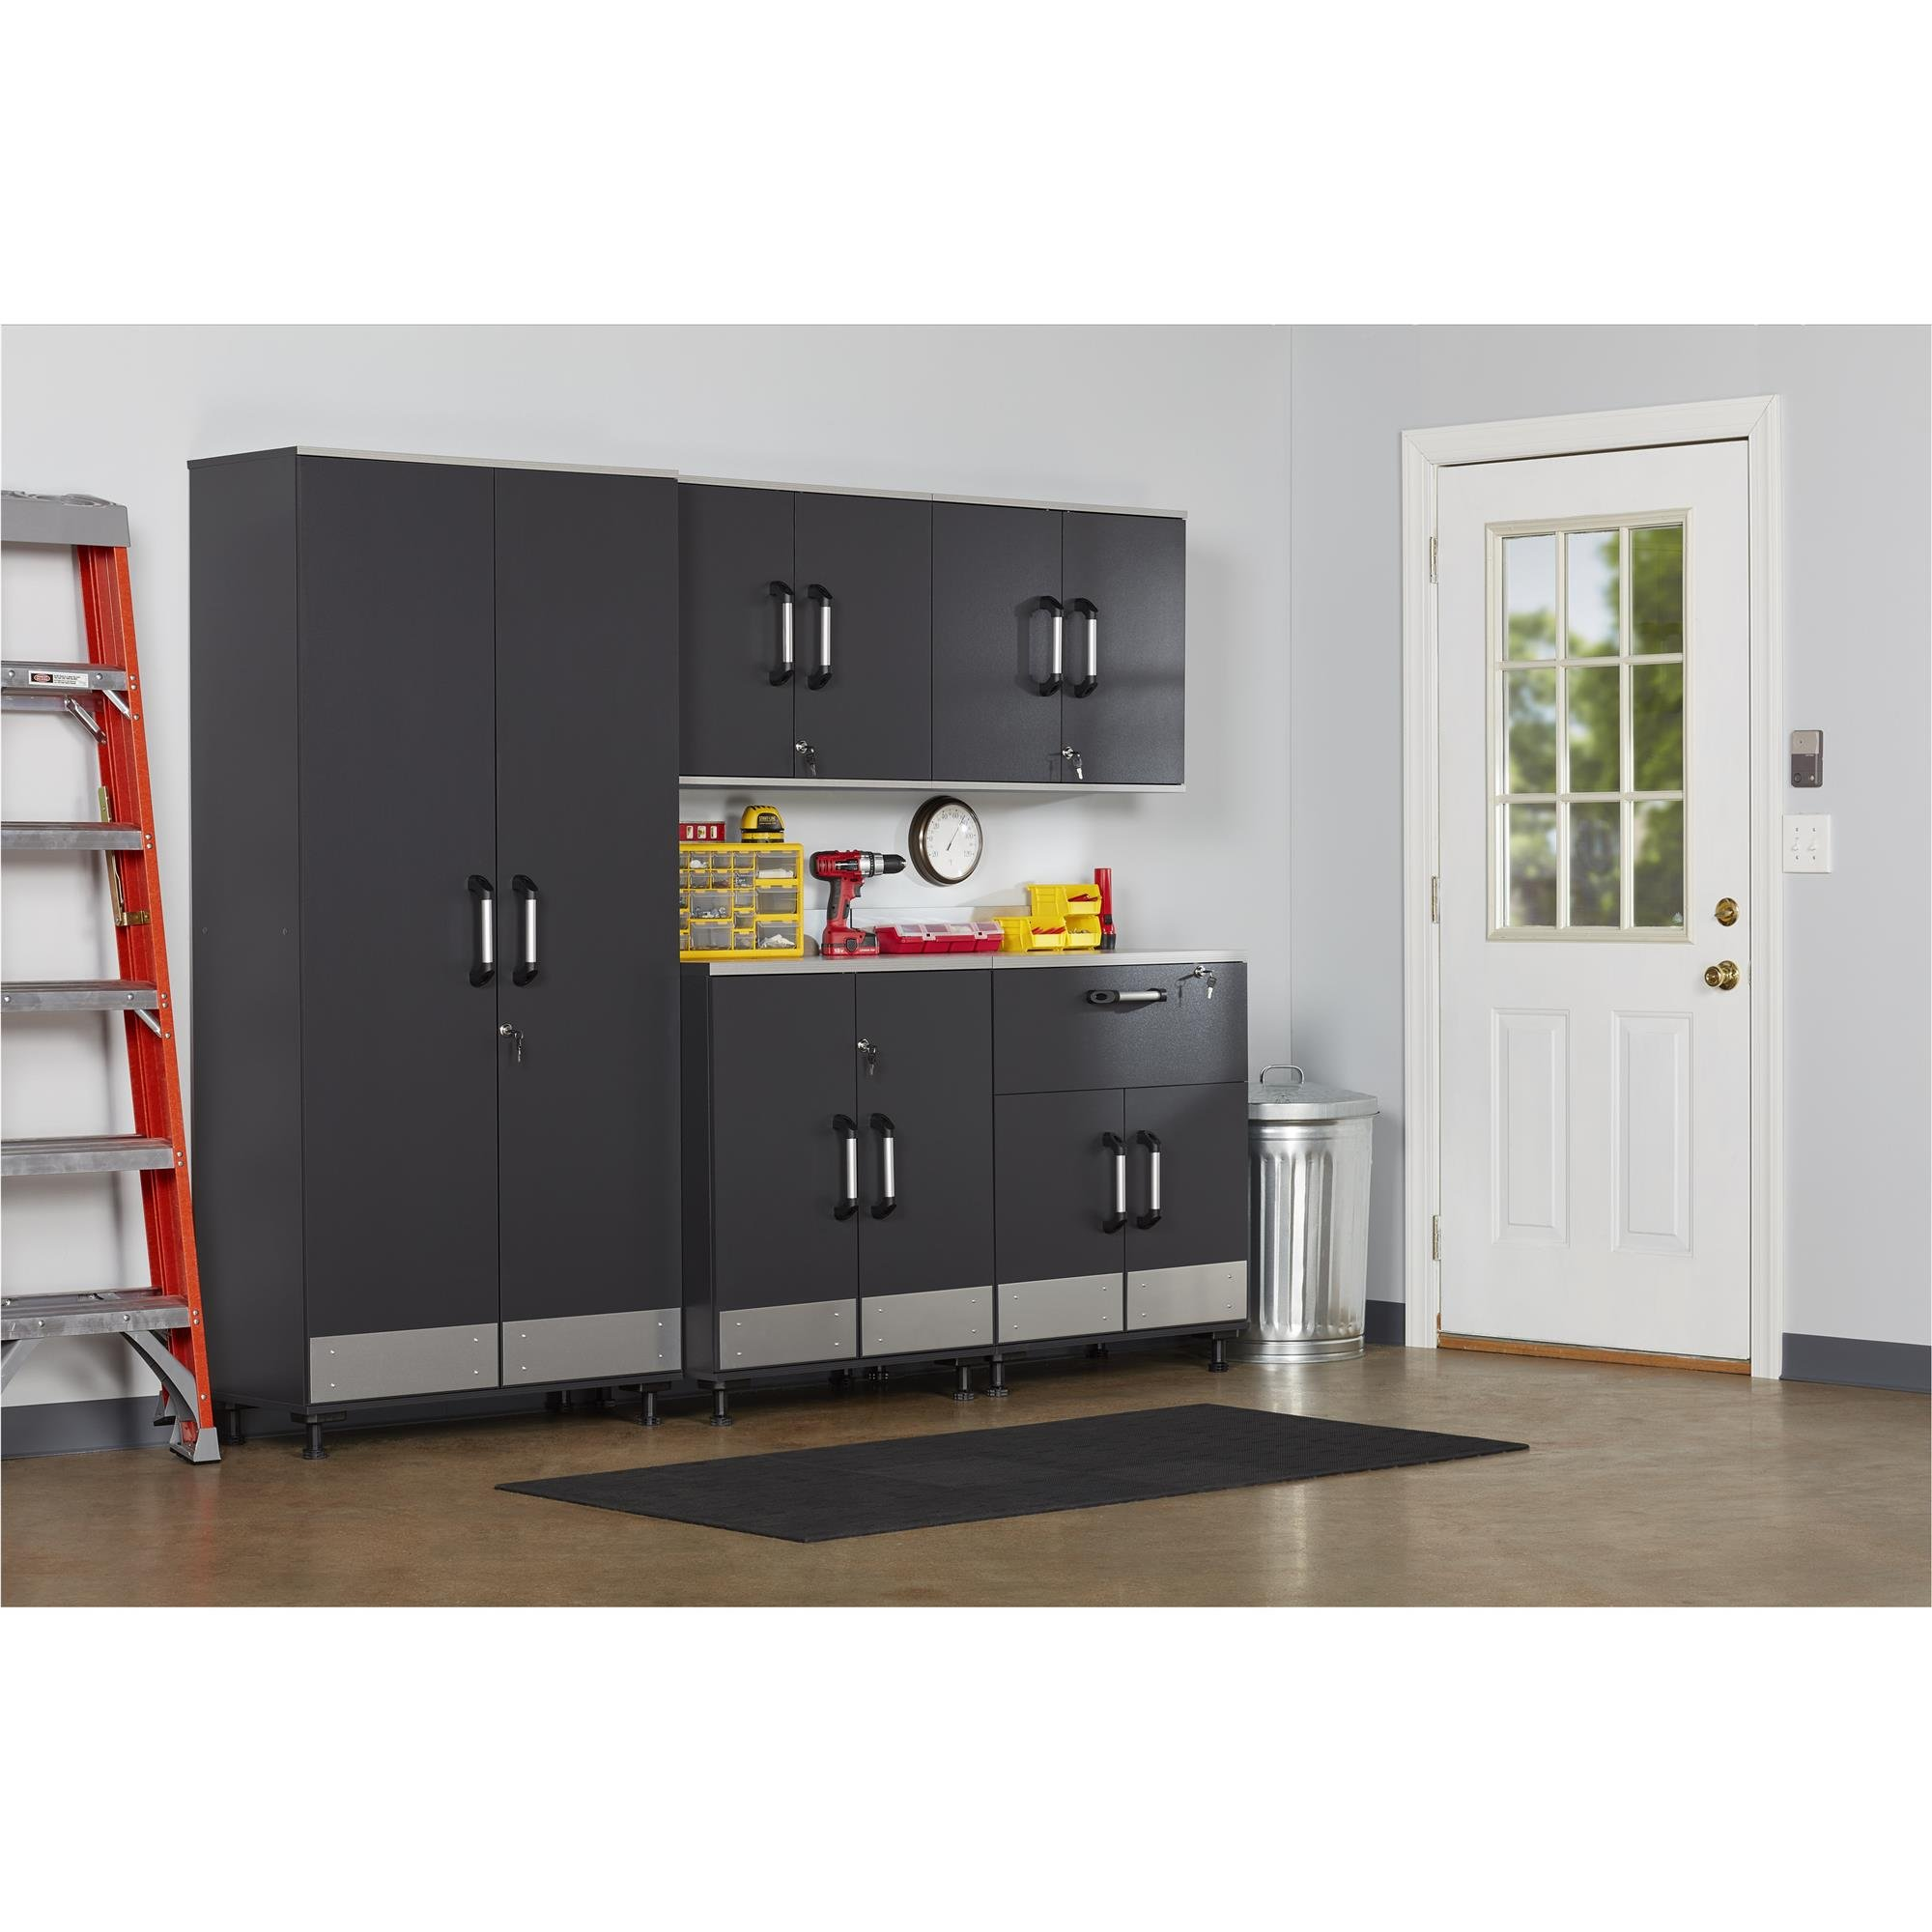 Ameriwood Home Boss -Base Cabinet 2 Door, Charcoal Gray by Ameriwood Home (Image #4)